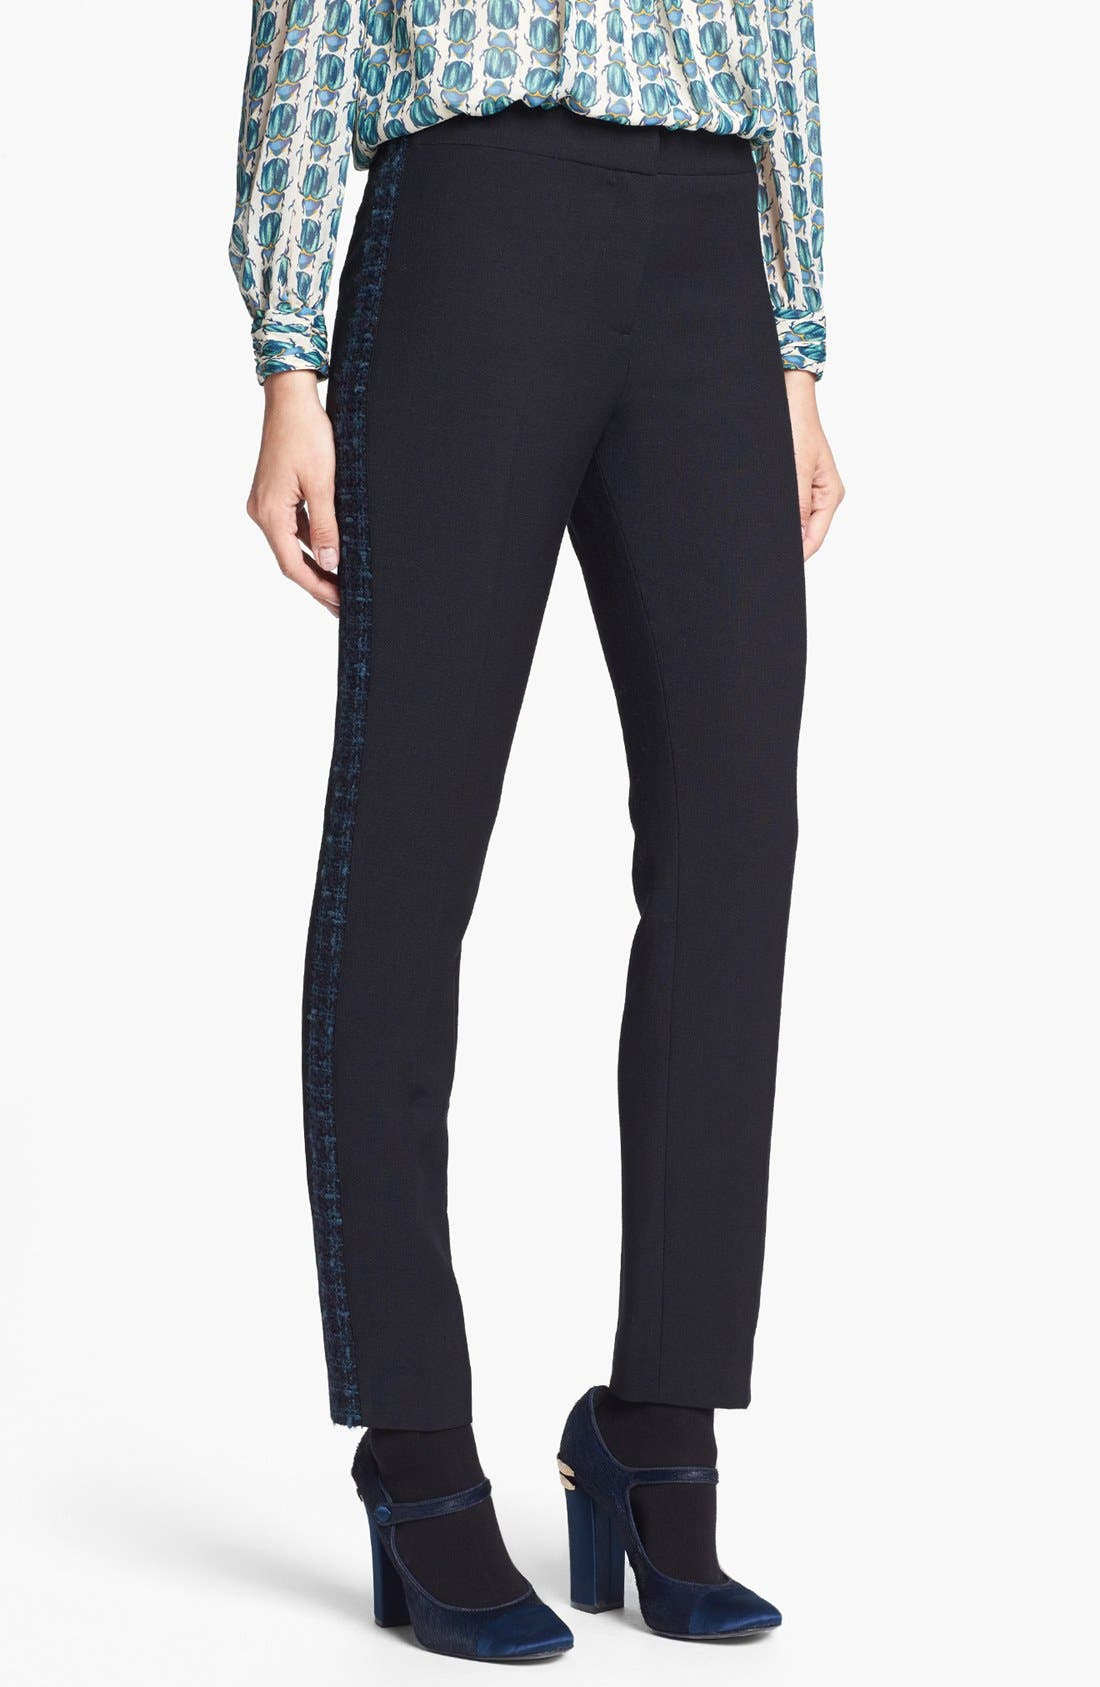 Alternate Image 1 Selected - Tory Burch 'Tobie' Stretch Tuxedo Pants